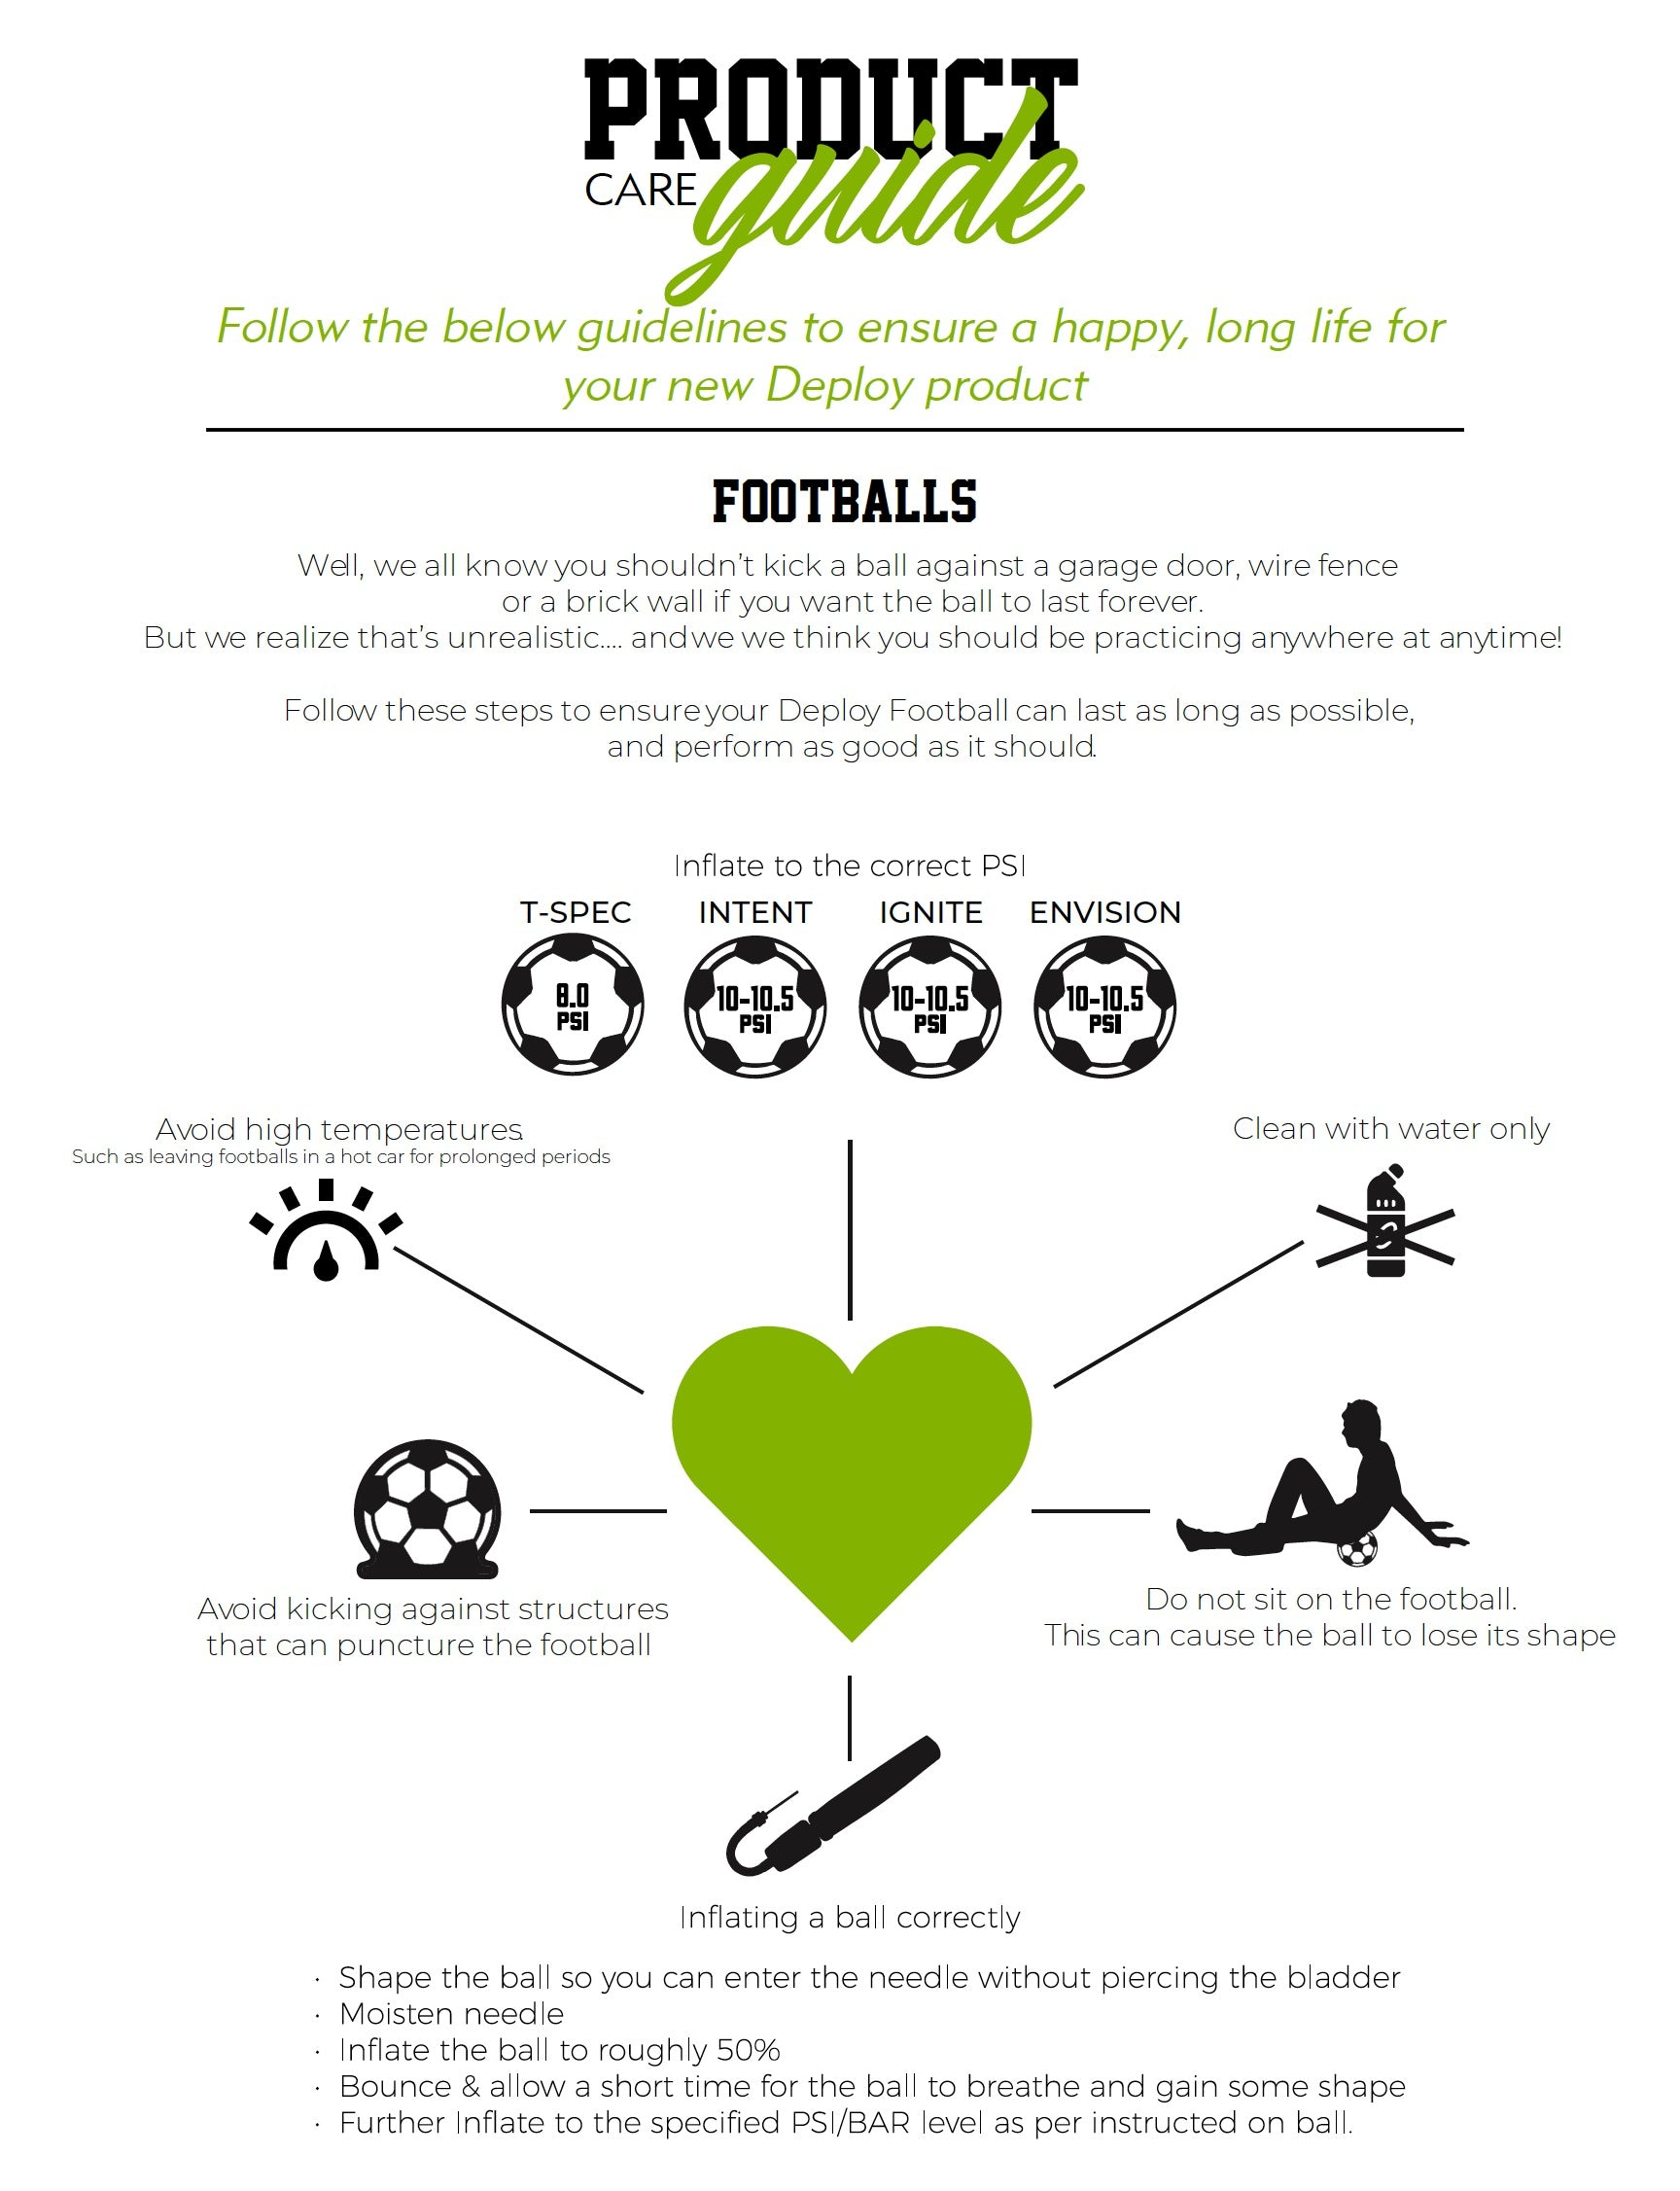 Deploy Football Care Guide